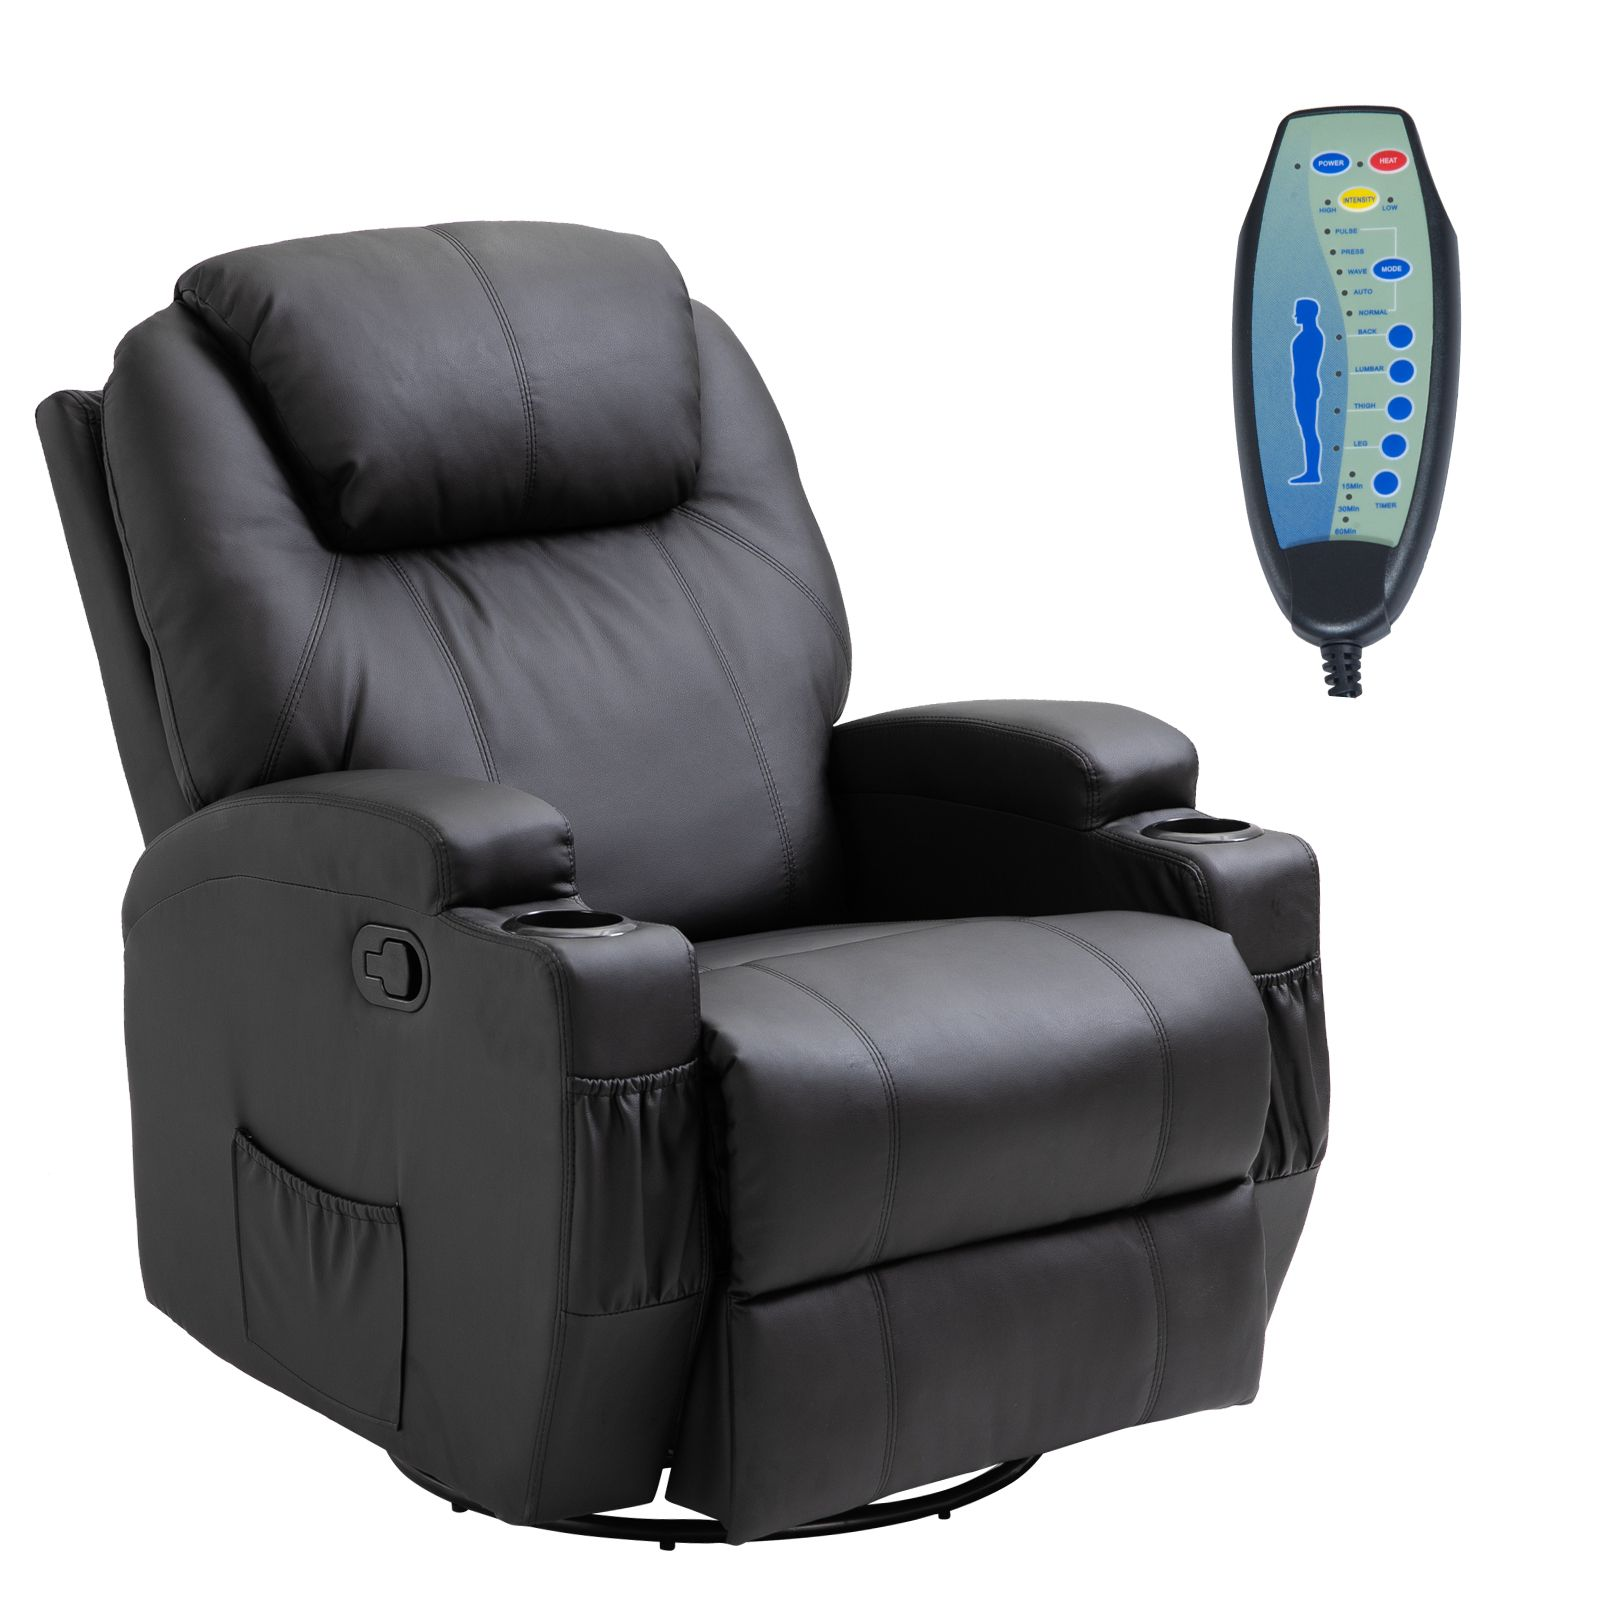 Faux Leather Heated Massage Recliner Chair with